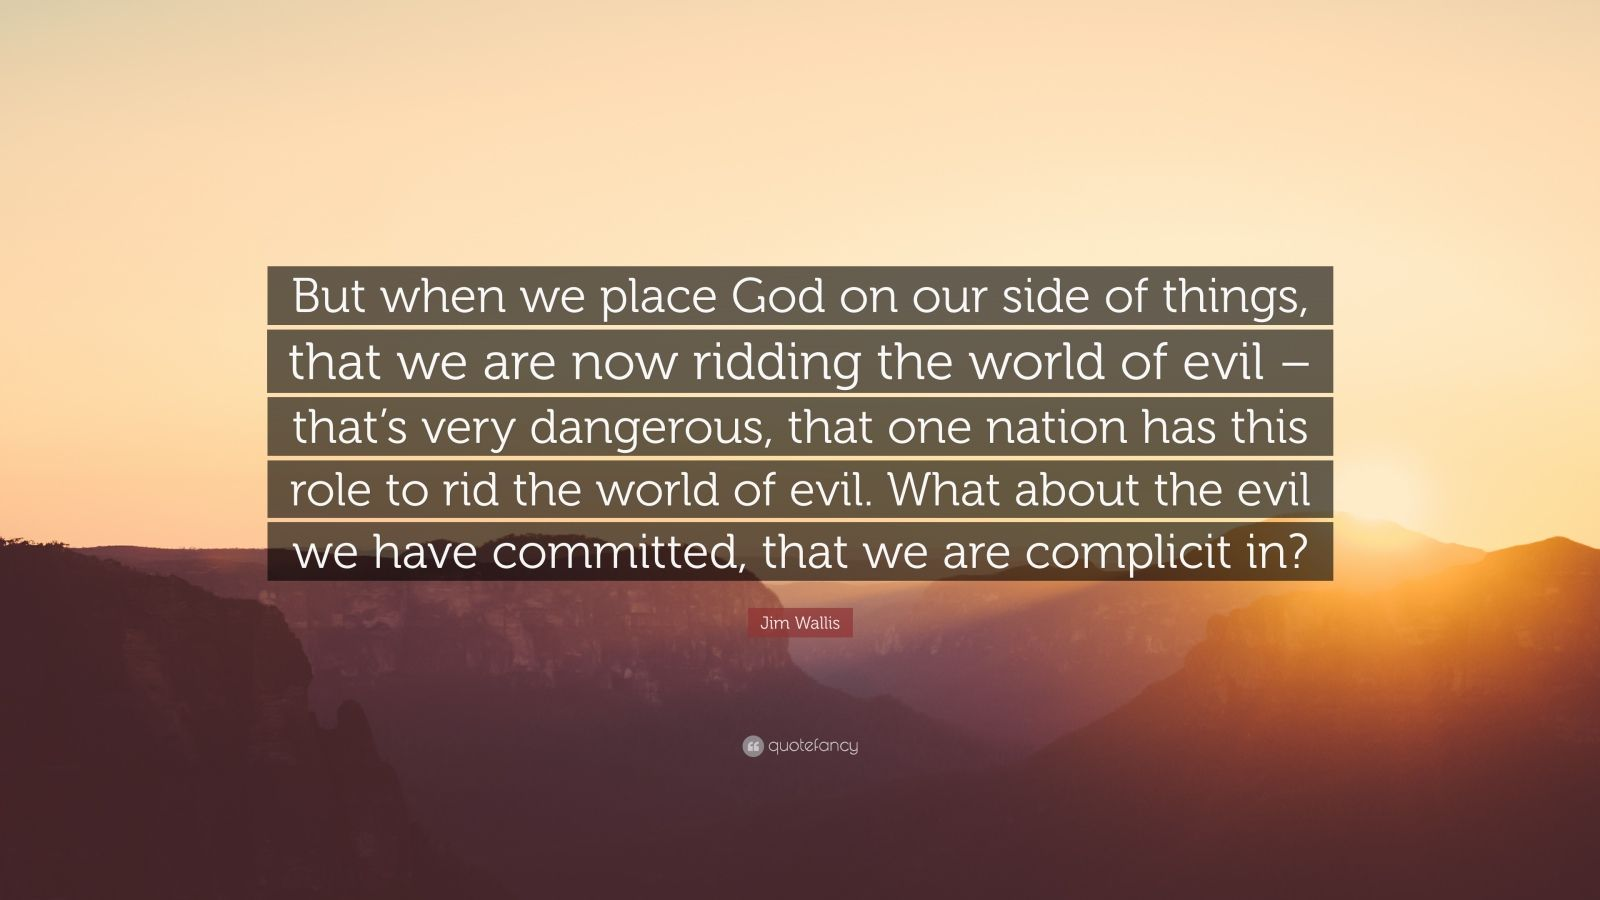 "Jim Wallis Quote: ""But when we place God on our side of things, that we are now ridding the world of evil – that's very dangerous, that one nation has this role to rid the world of evil. What about the evil we have committed, that we are complicit in?"""